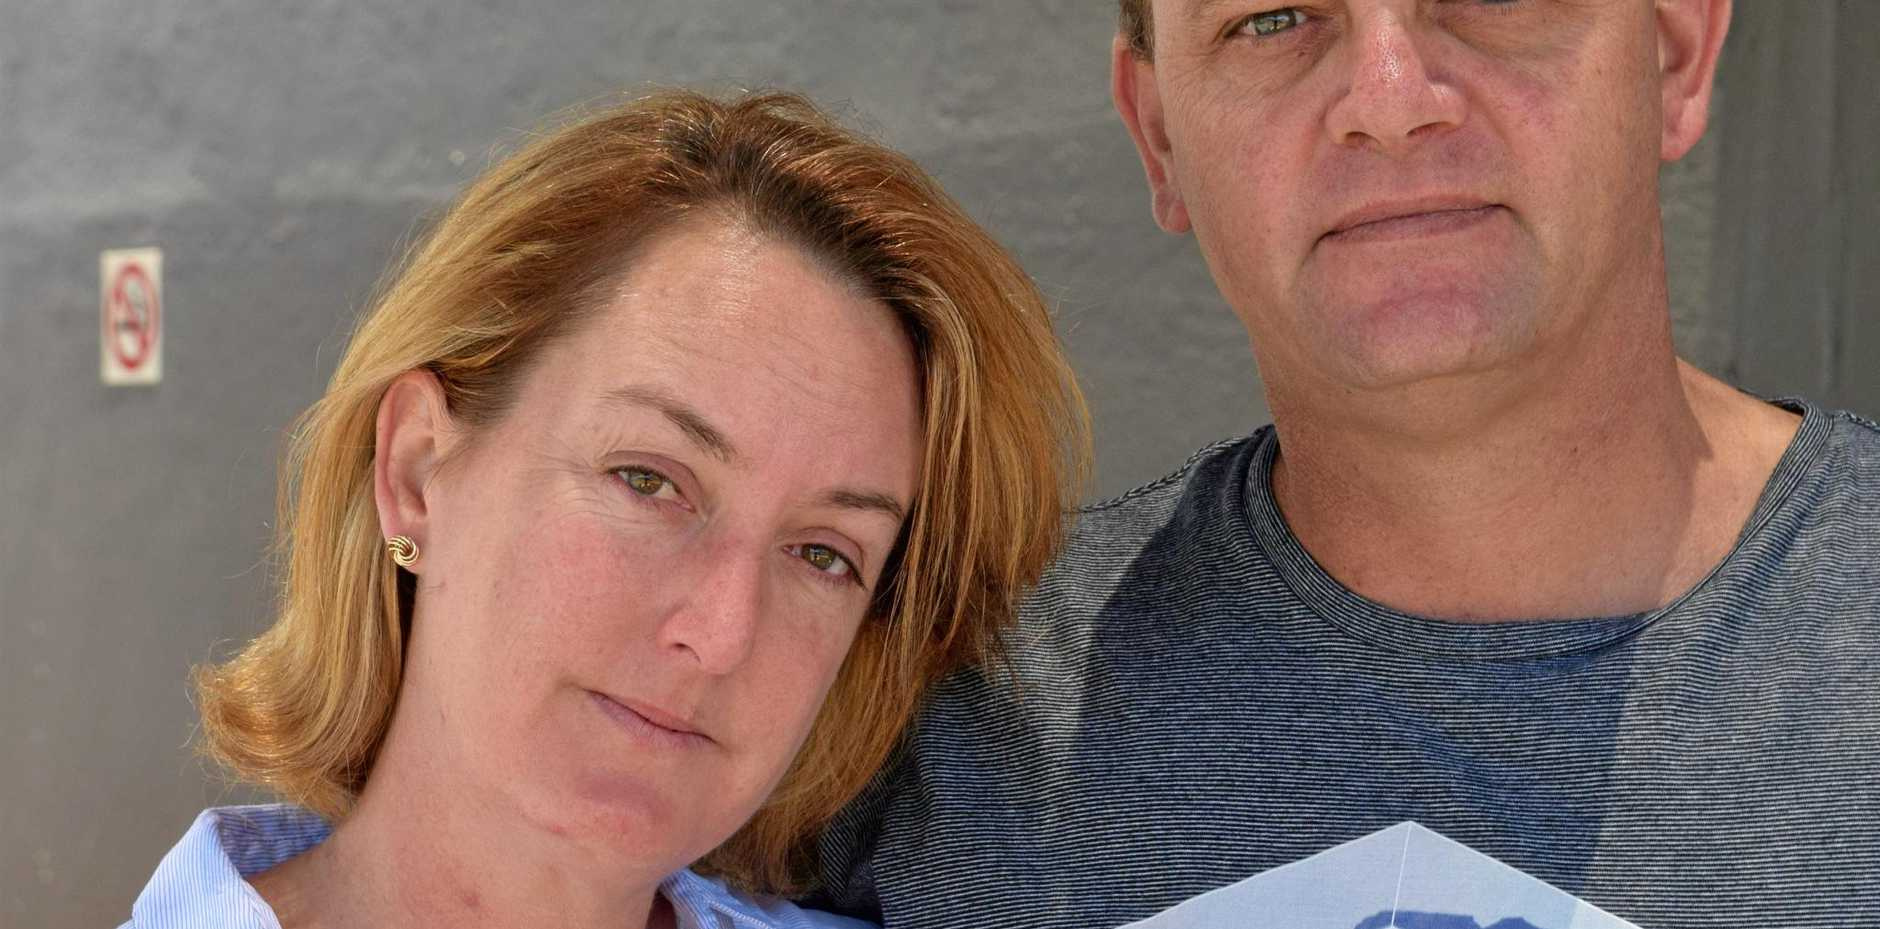 Since losing the Great Northern Sports Club in November, things have only got worse for Sally and James Wynne.